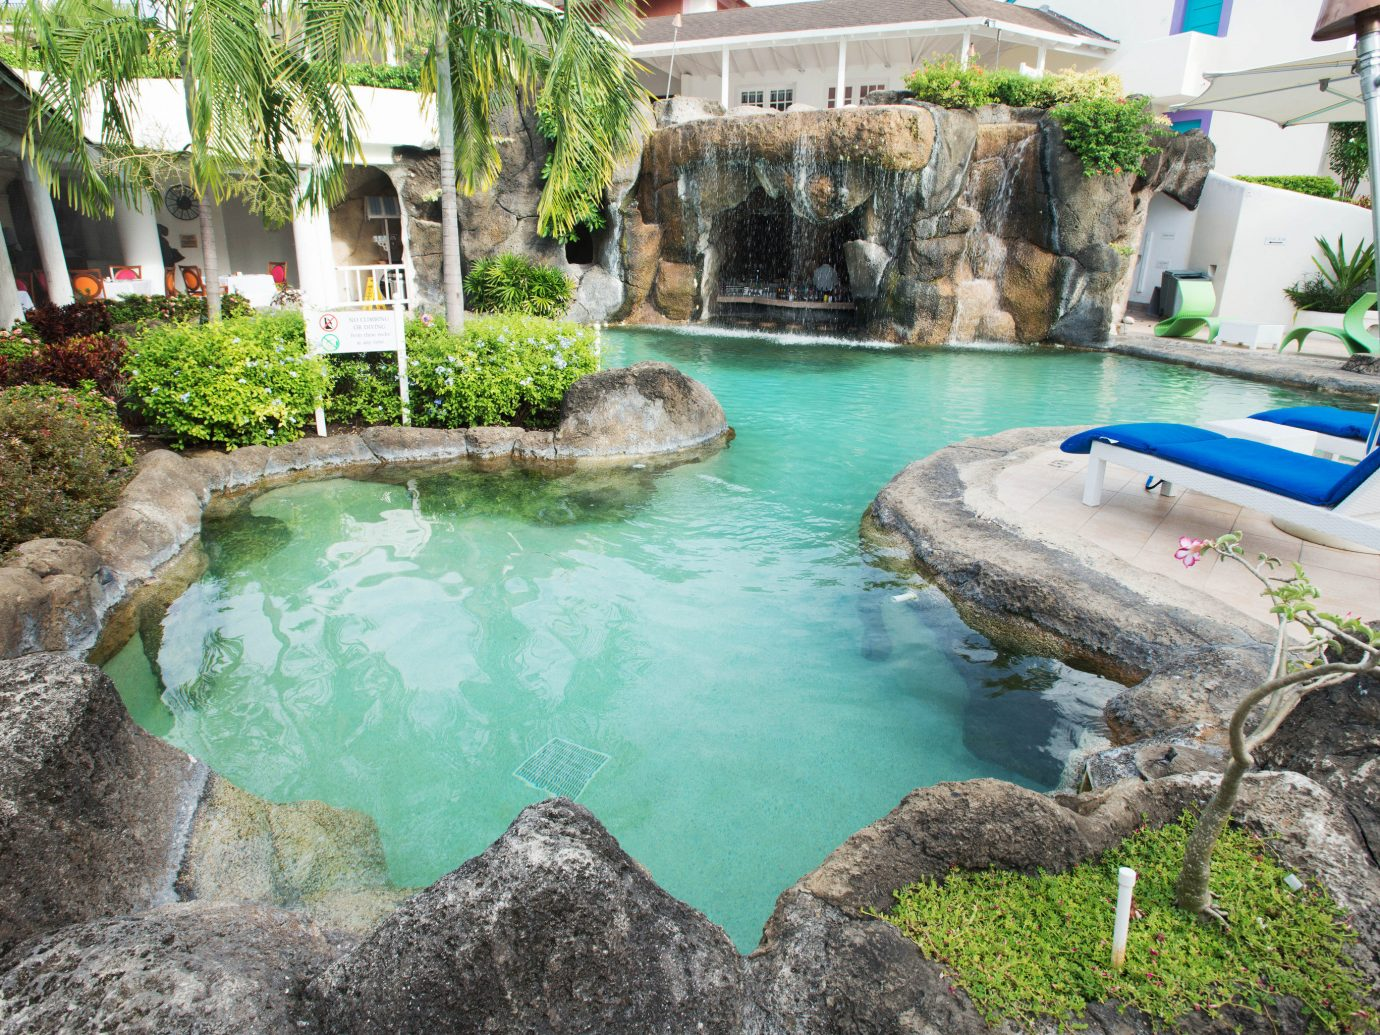 All-Inclusive Resorts Hotels building outdoor rock swimming pool property house pond backyard Nature estate Pool Garden Resort water feature fish pond stone